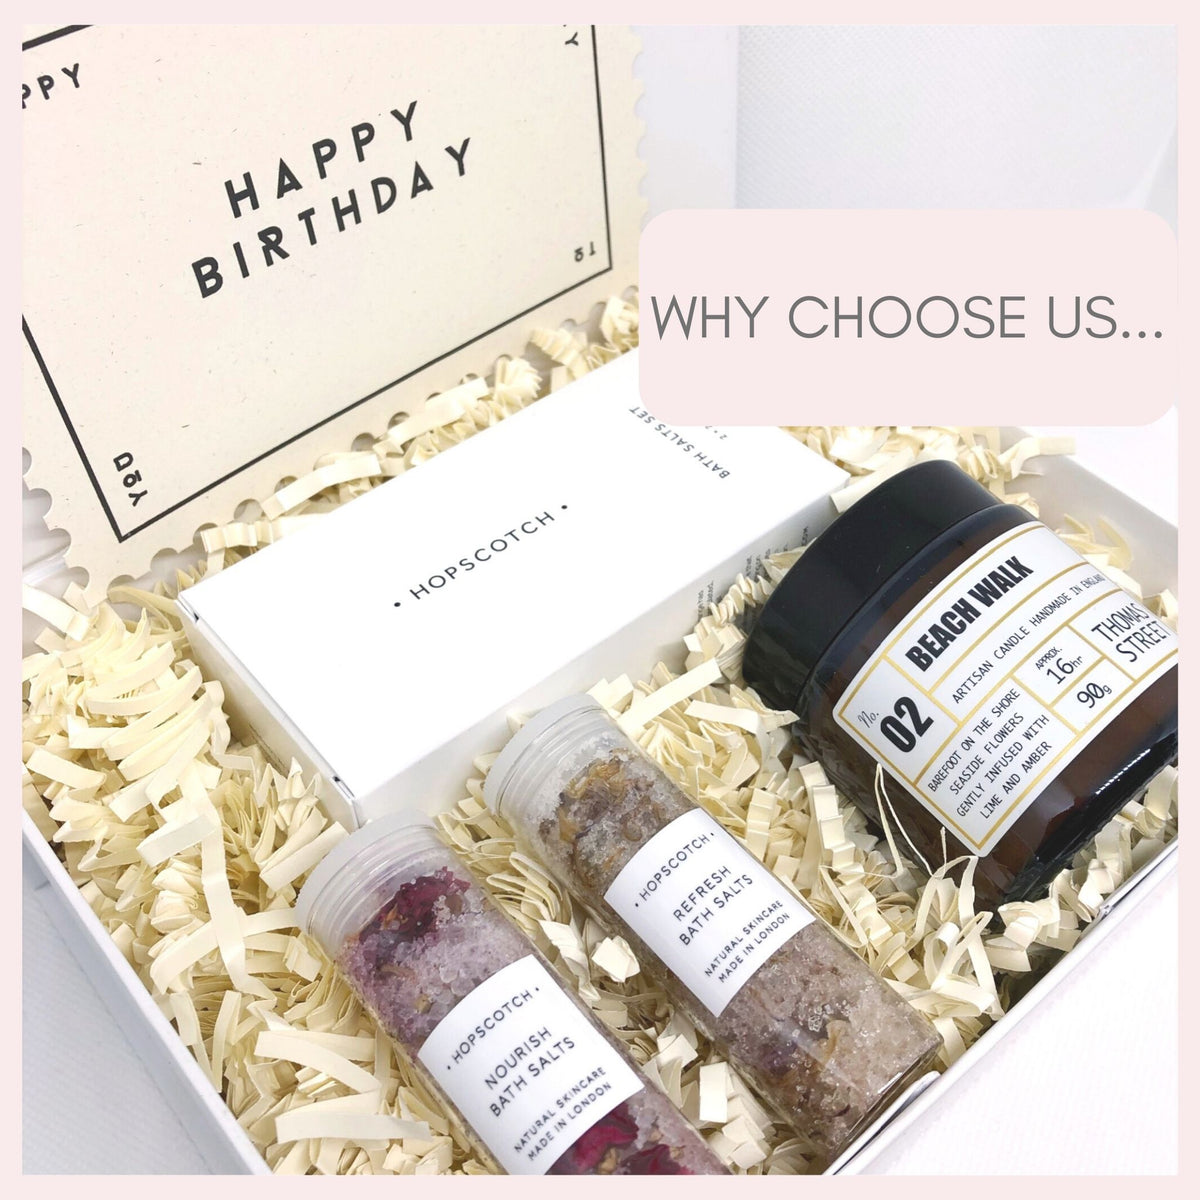 Pre-filled pamper gift box and reasons to choose us